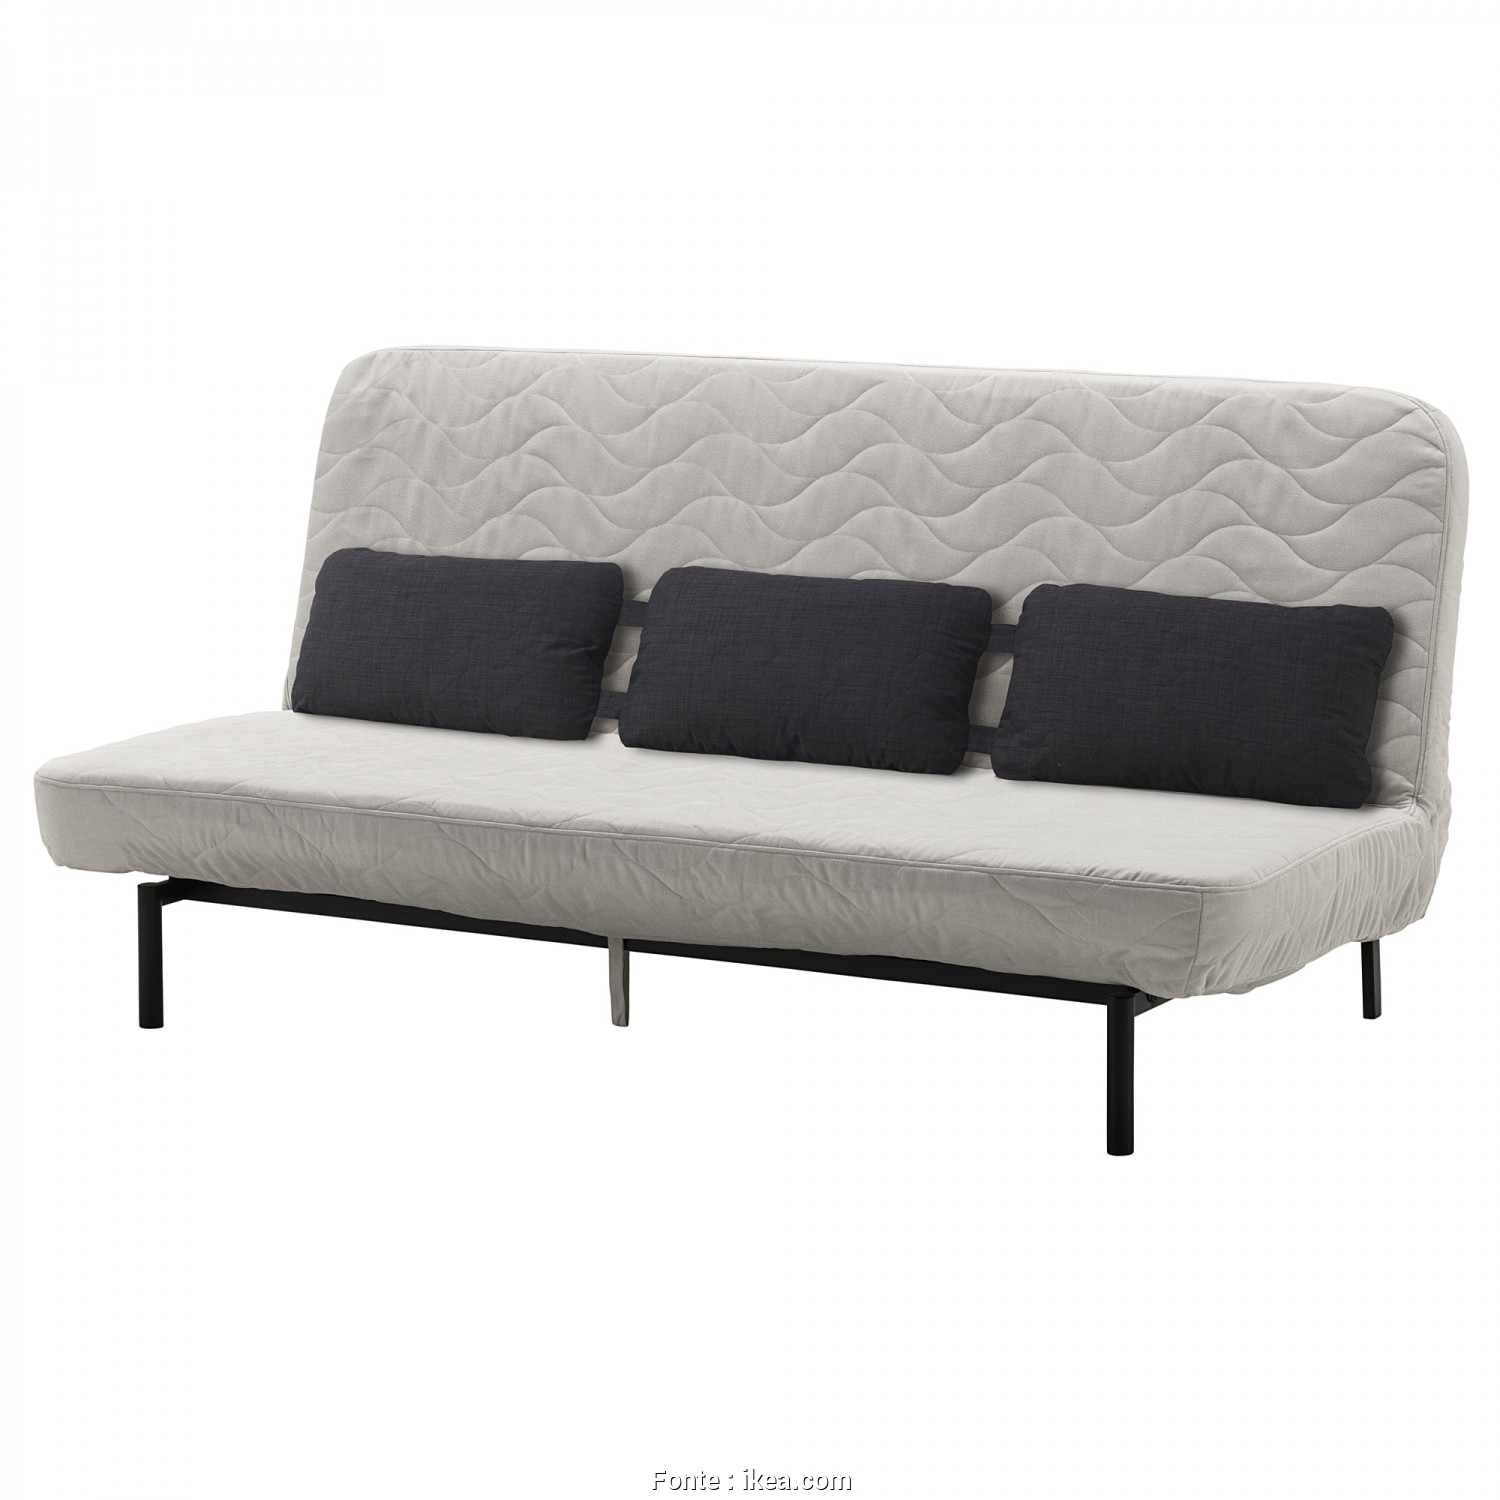 Futon Ikea Balkarp, Favoloso NYHAMN Sleeper Sofa With Triple Cushion, With Foam Mattress, Borred Light Beige